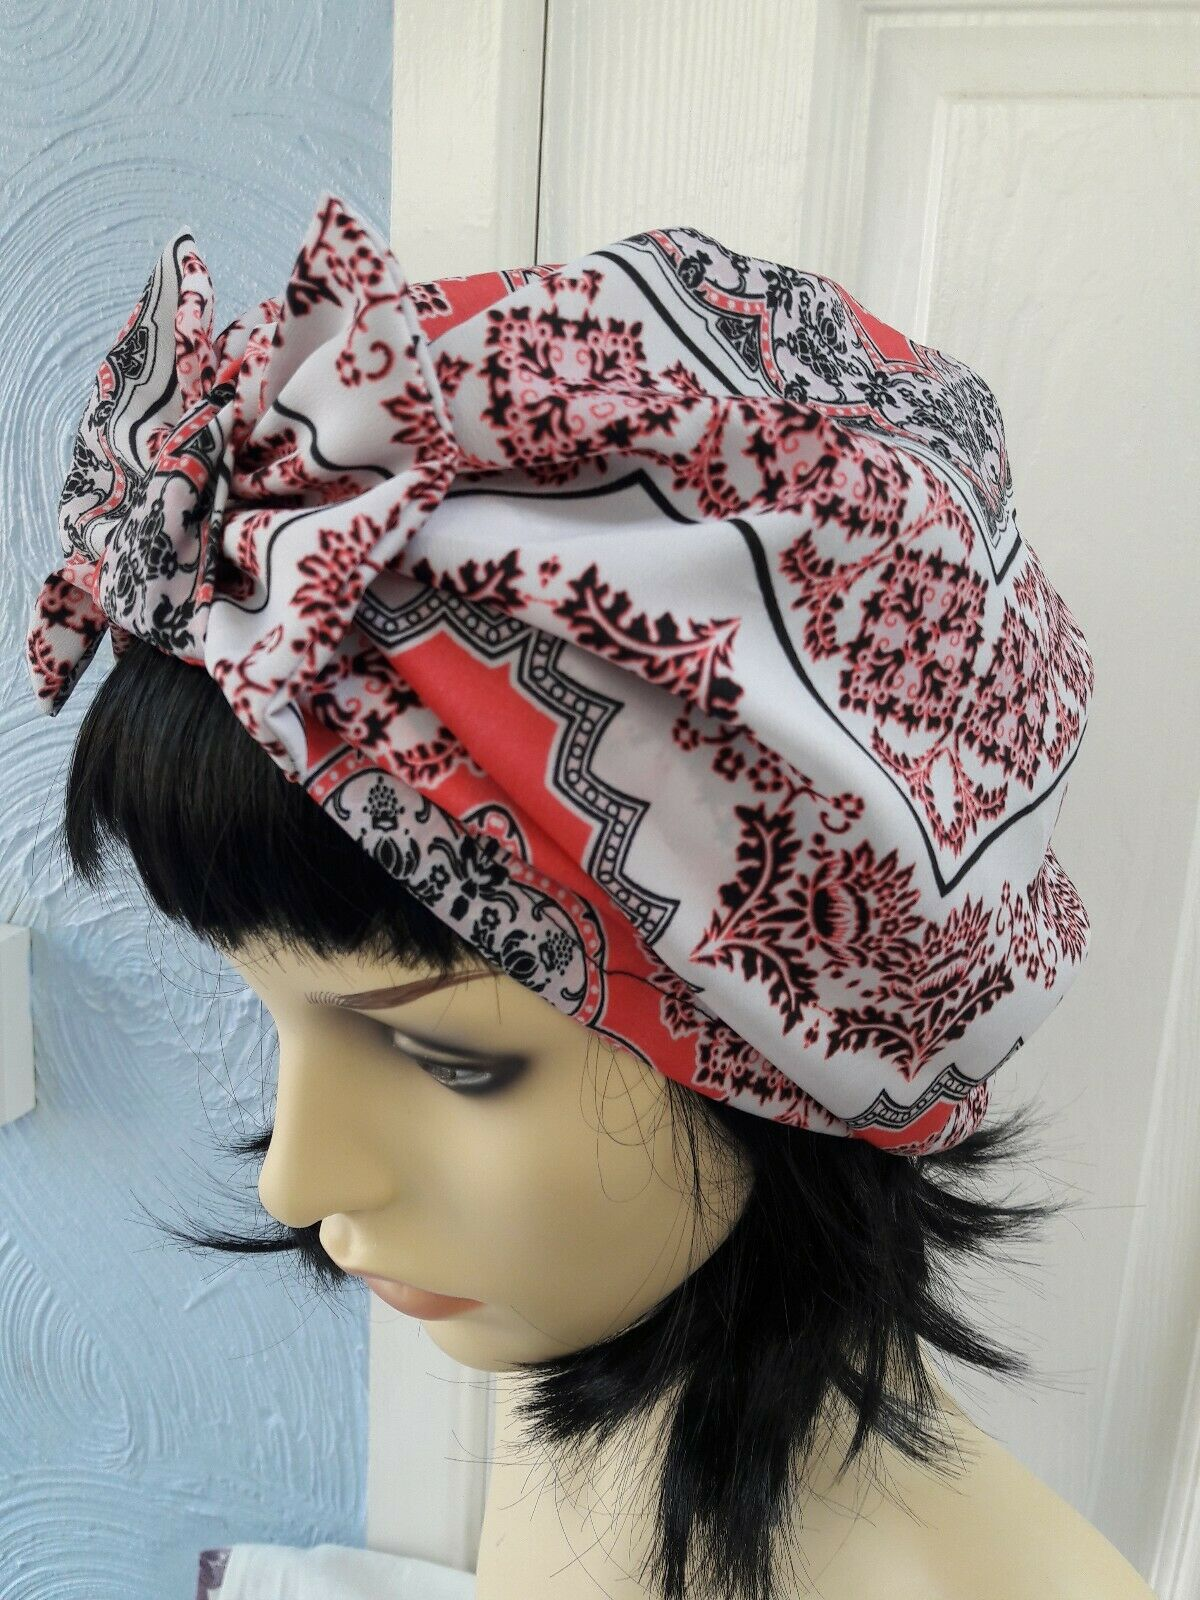 Vintage inspired 1920s 1930s ladies hat turban hair covered size M _L with bow